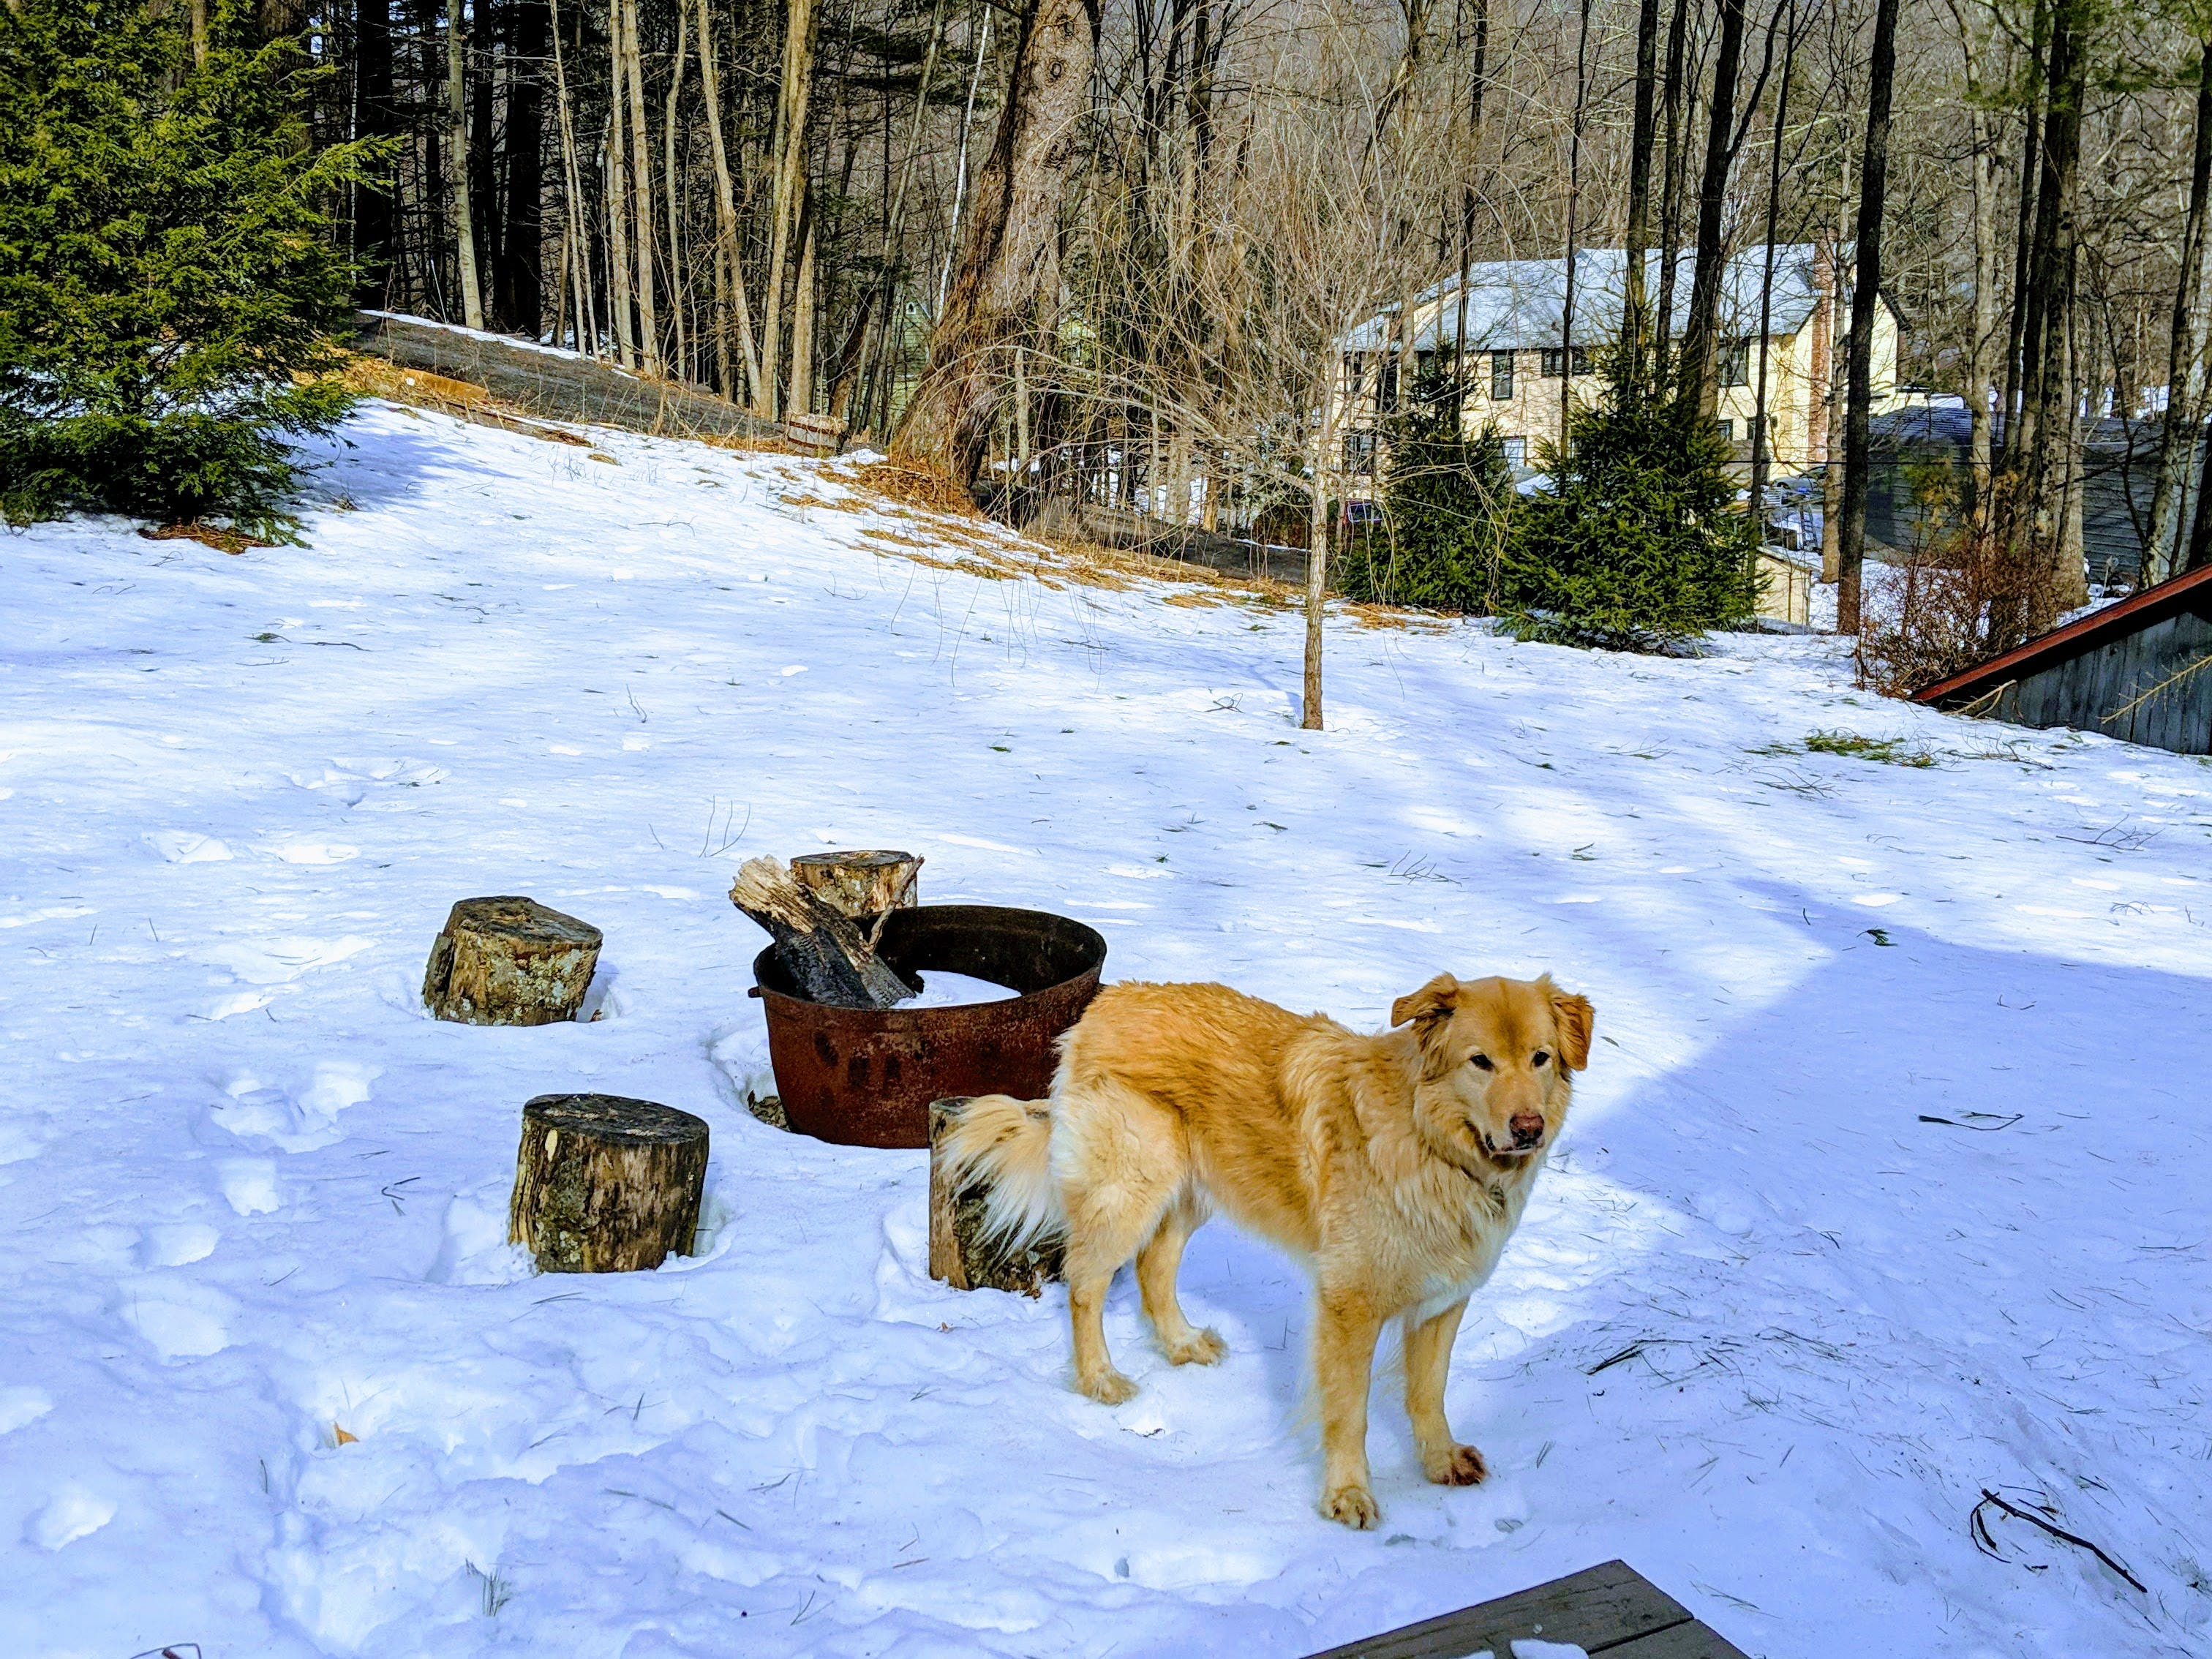 Finn the dog, contemplating the meaning of snow in the Catskills.